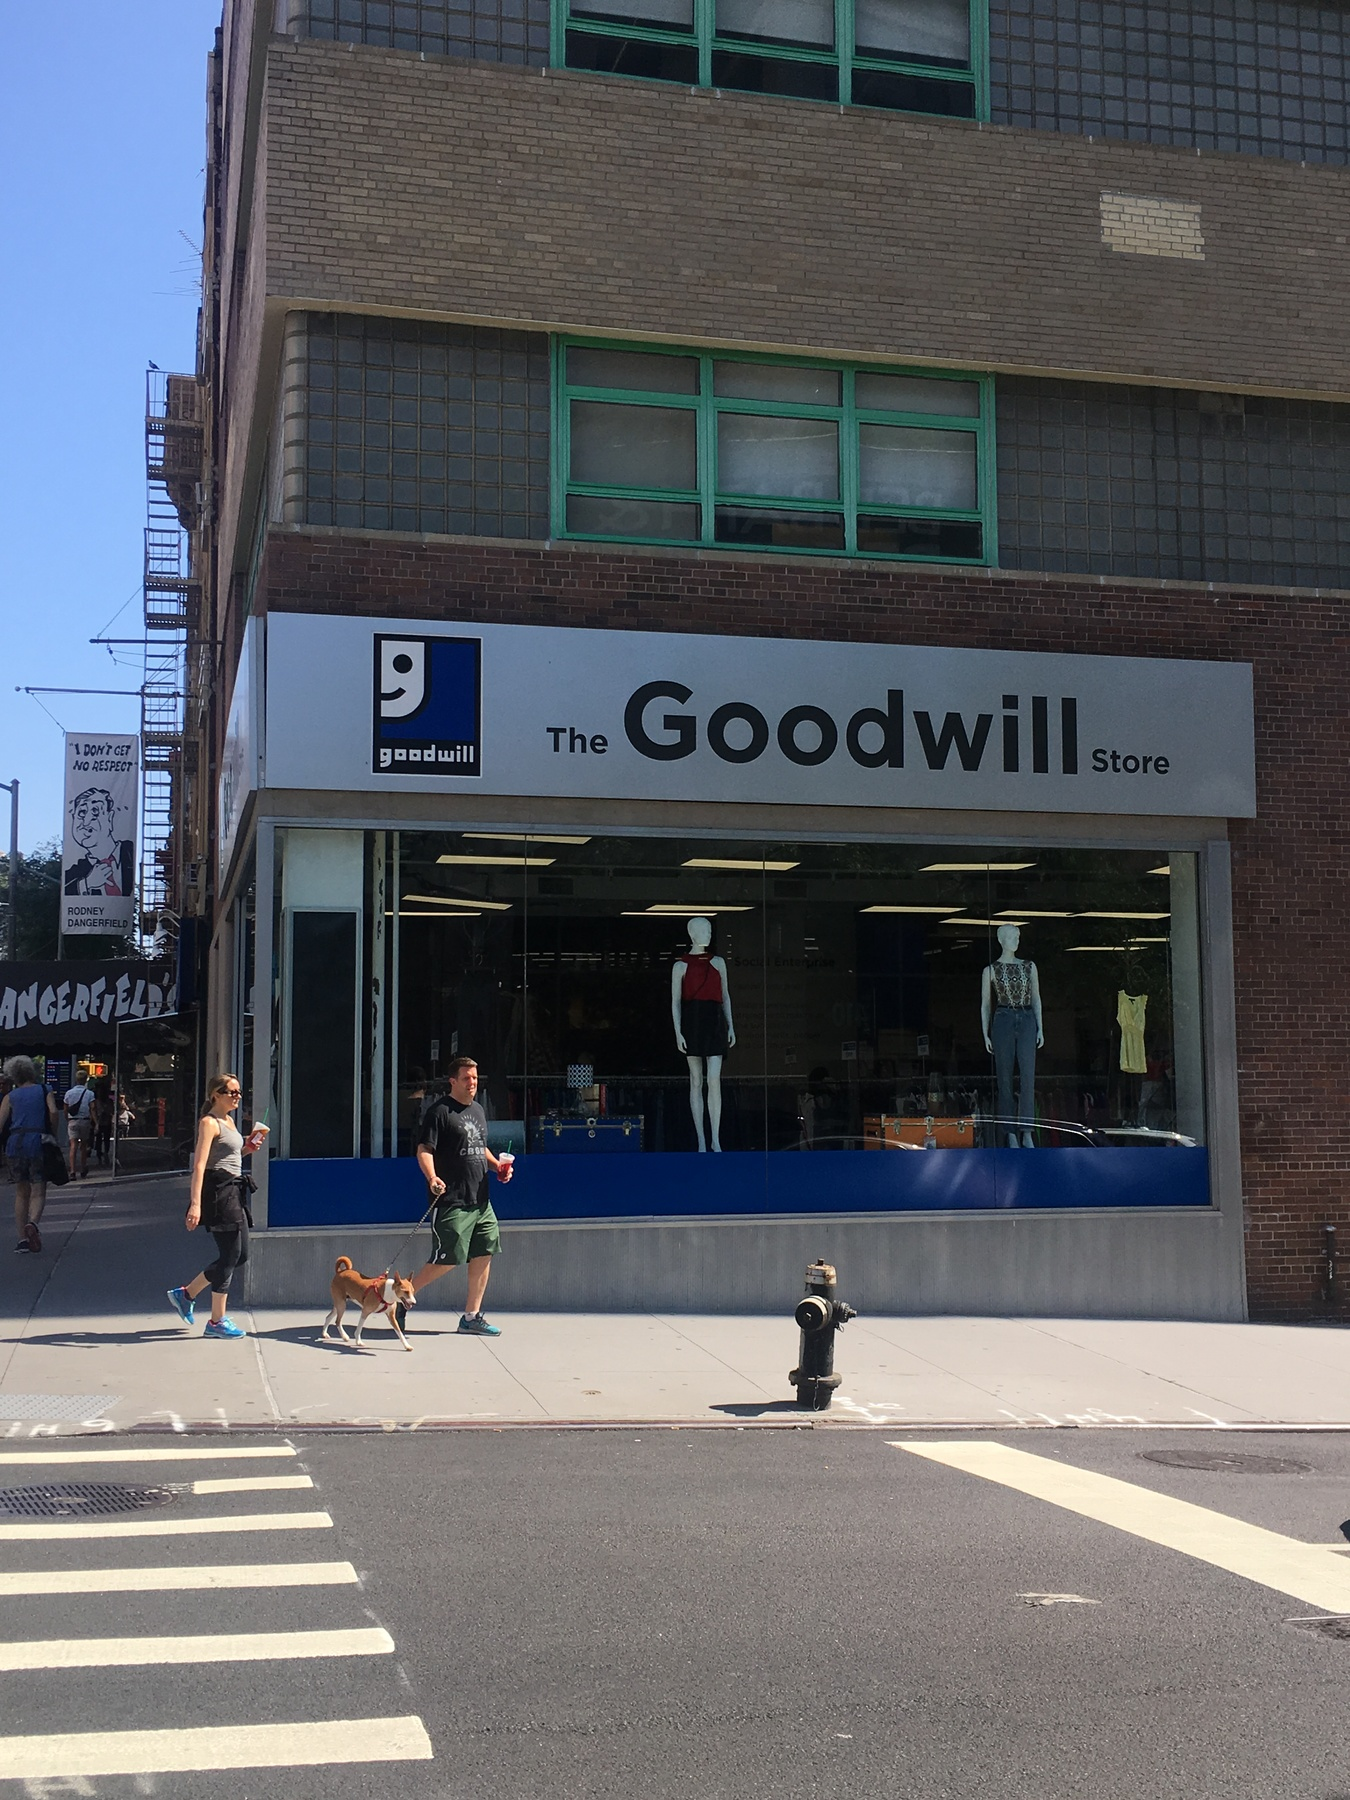 Goodwill store located in Upper East Side of New York